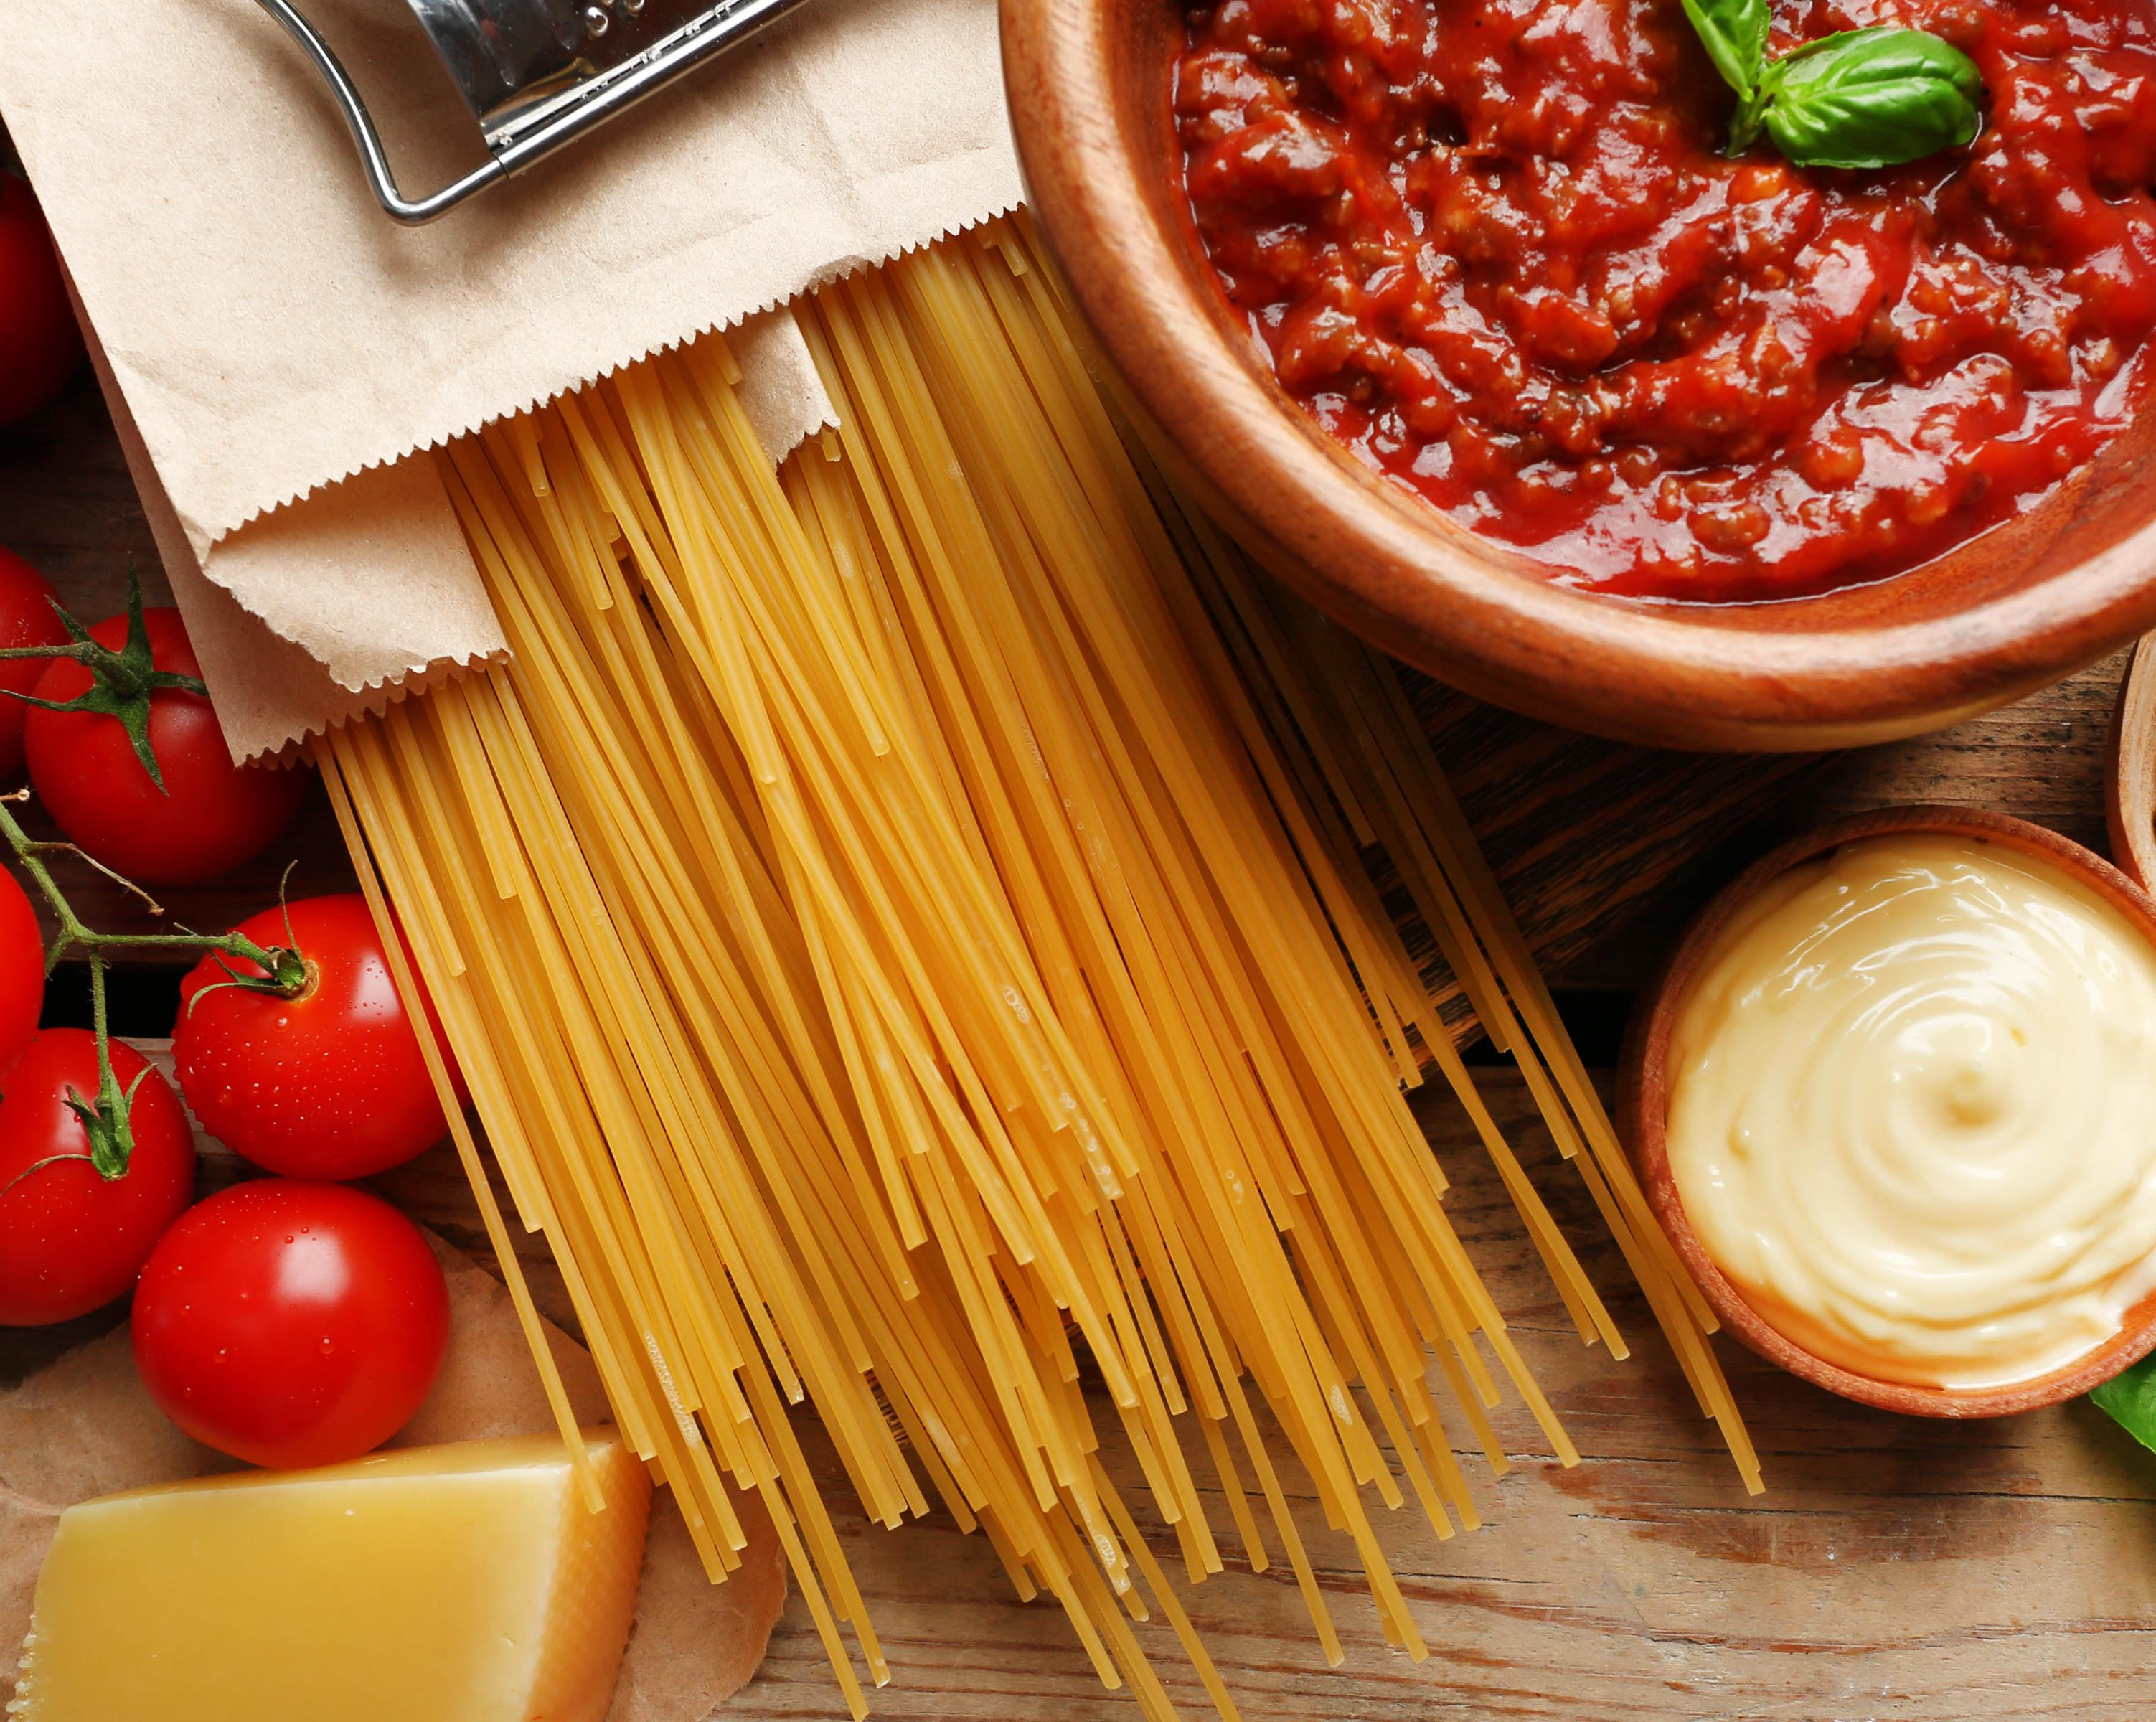 Dry spaghetti in a paper bag on a wooden table with a bowl of tomato sauce next to tomatoes on the vine